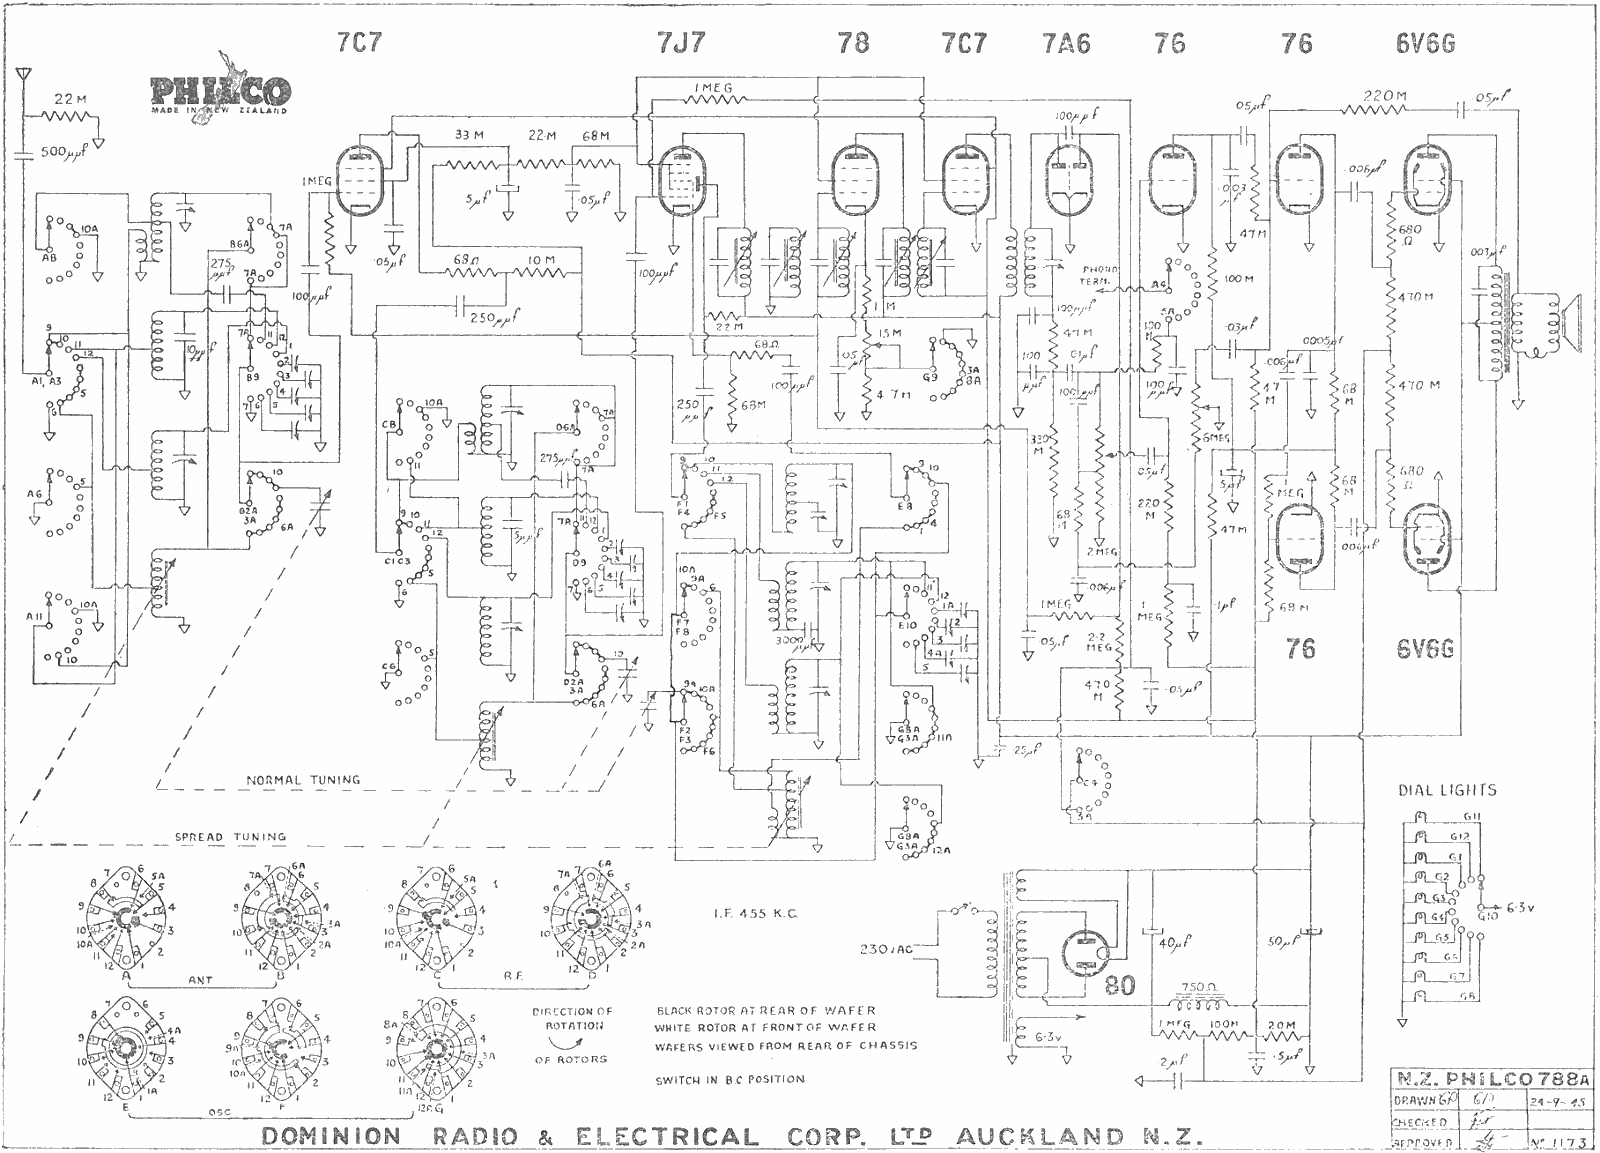 1941 Philco model 788 schematic